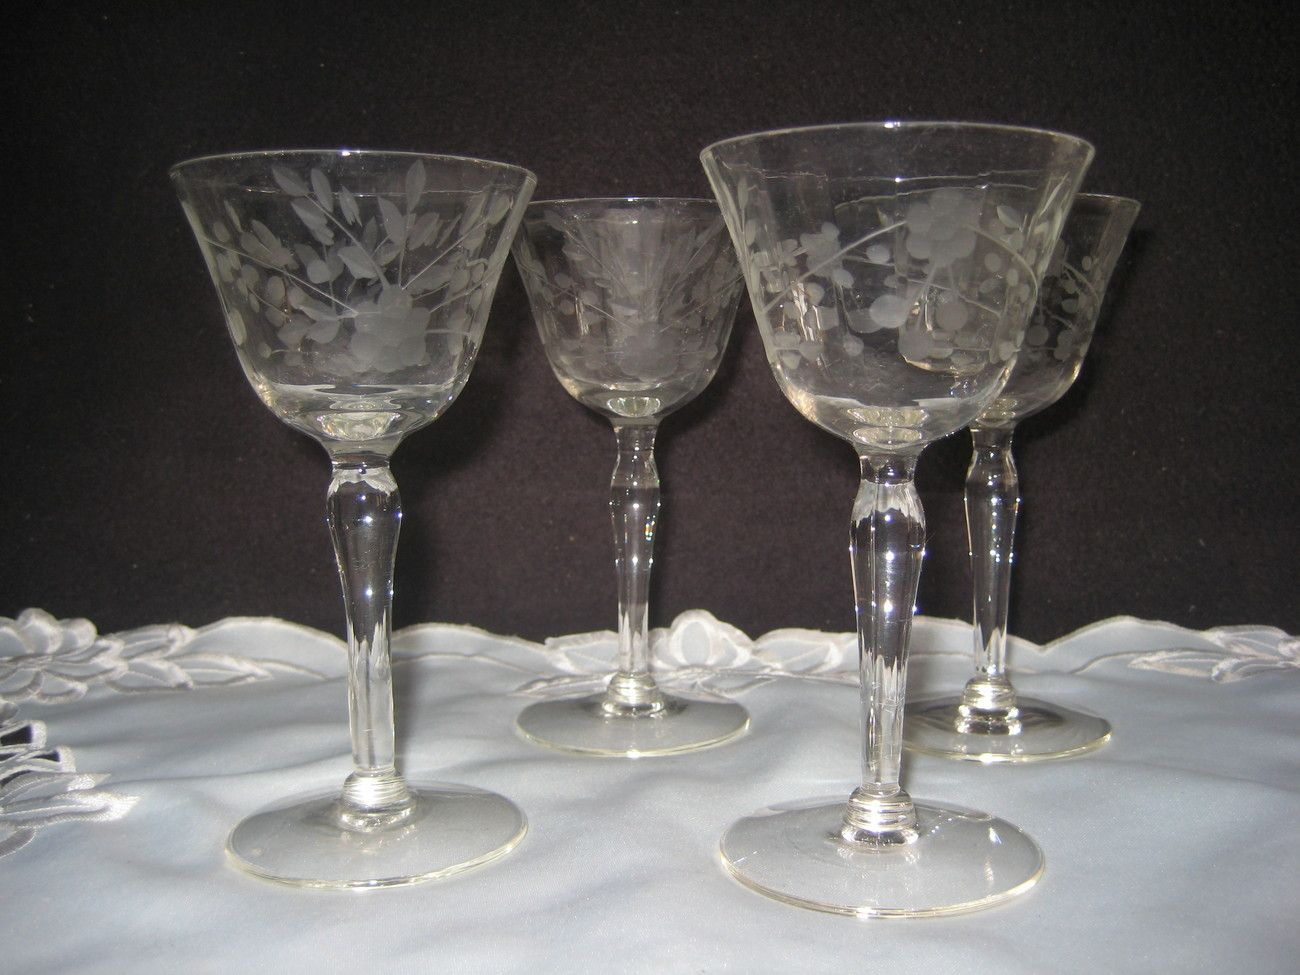 Crystal Stemware Wine Glasses Antique Etched Crystal Stemware Vintage Crystal Clear